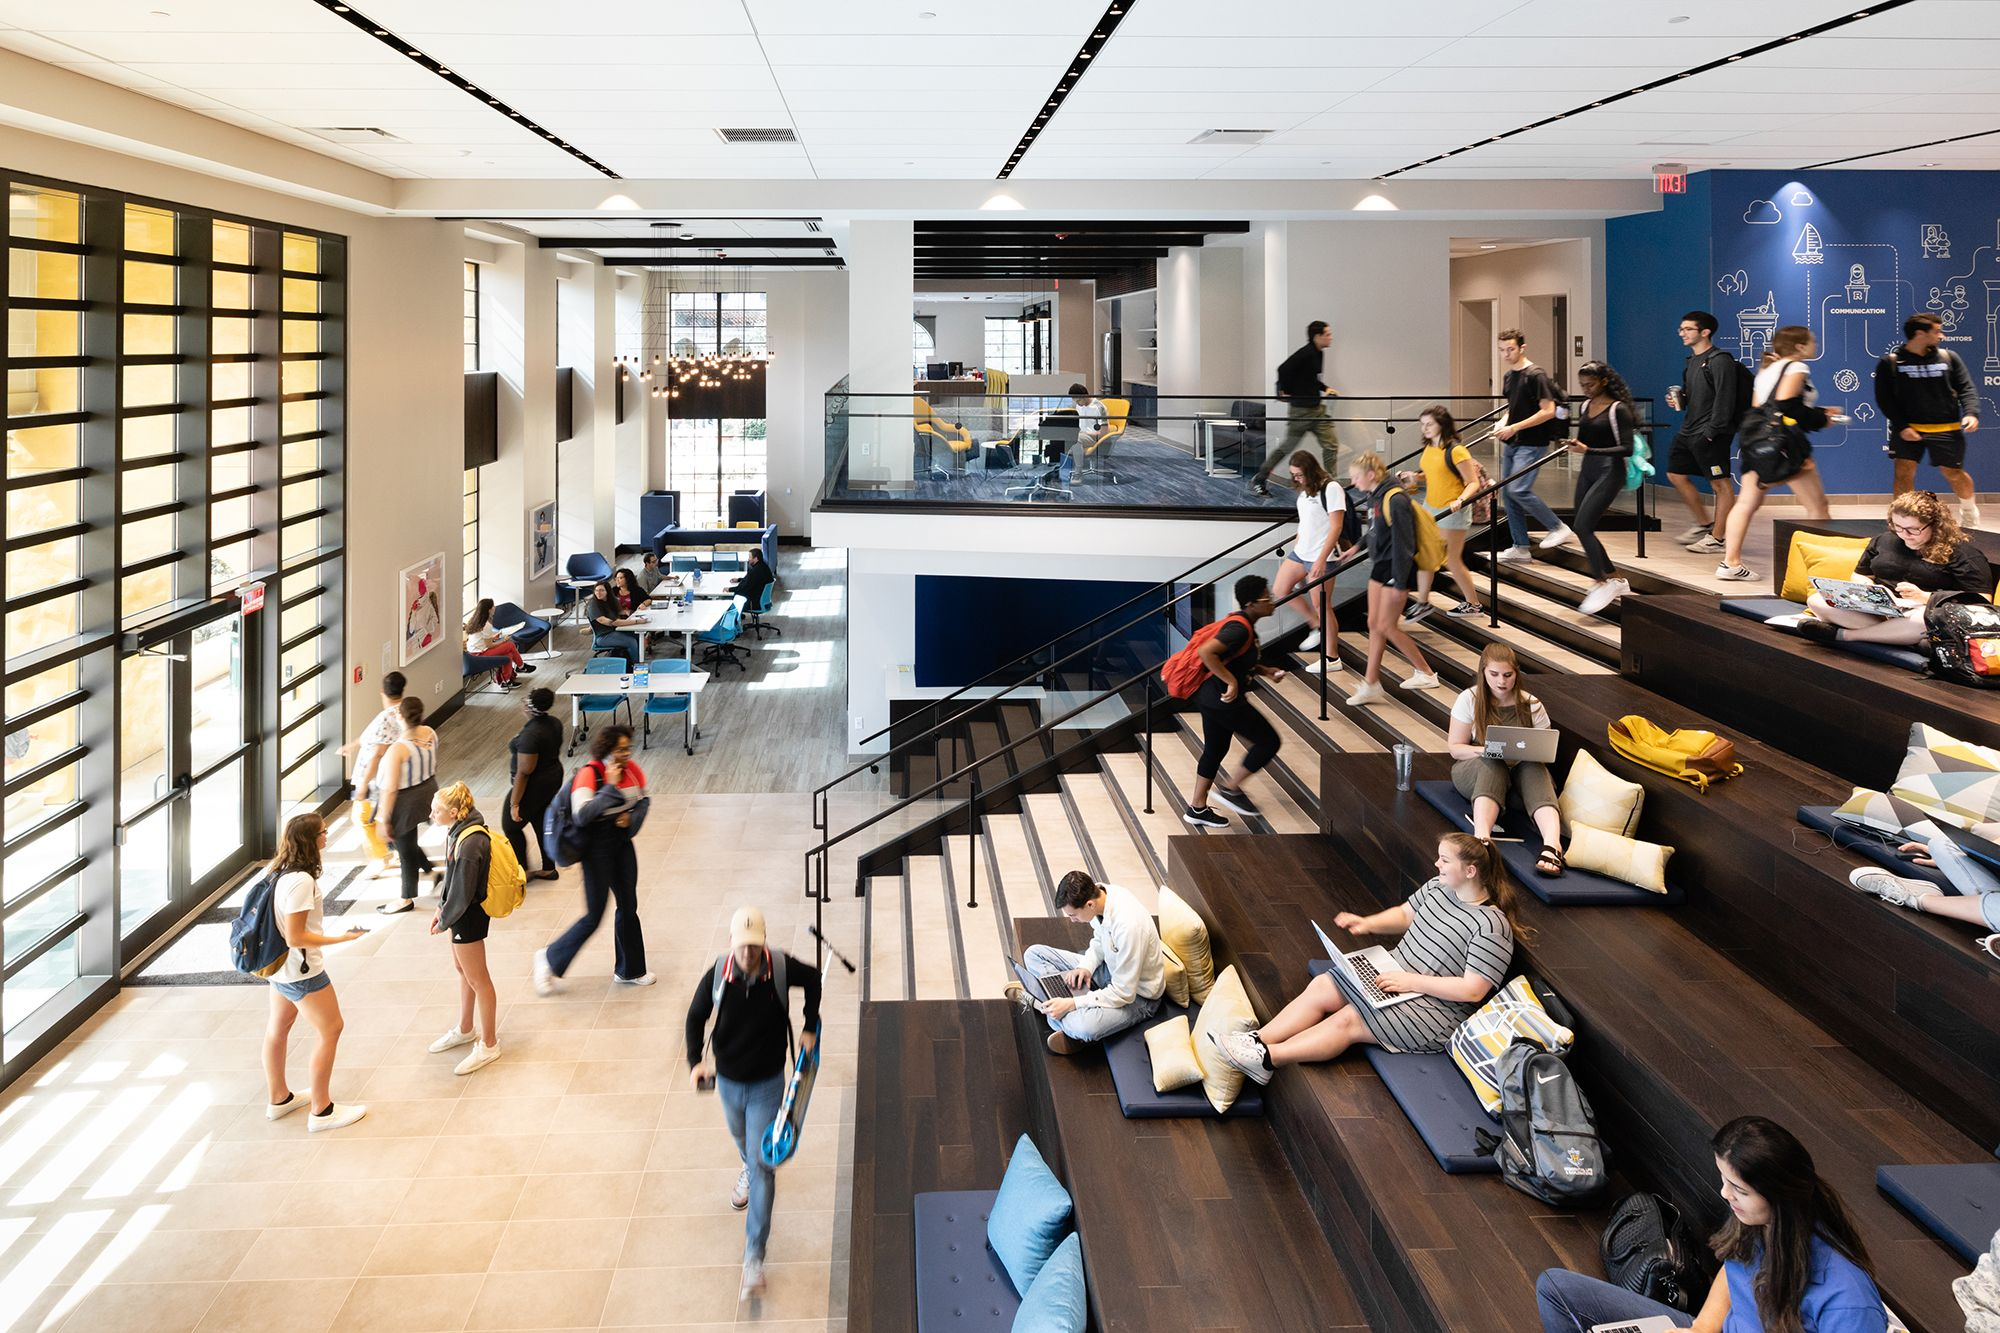 Students sitting and traveling through the plateaued atrium of KWR Hall.